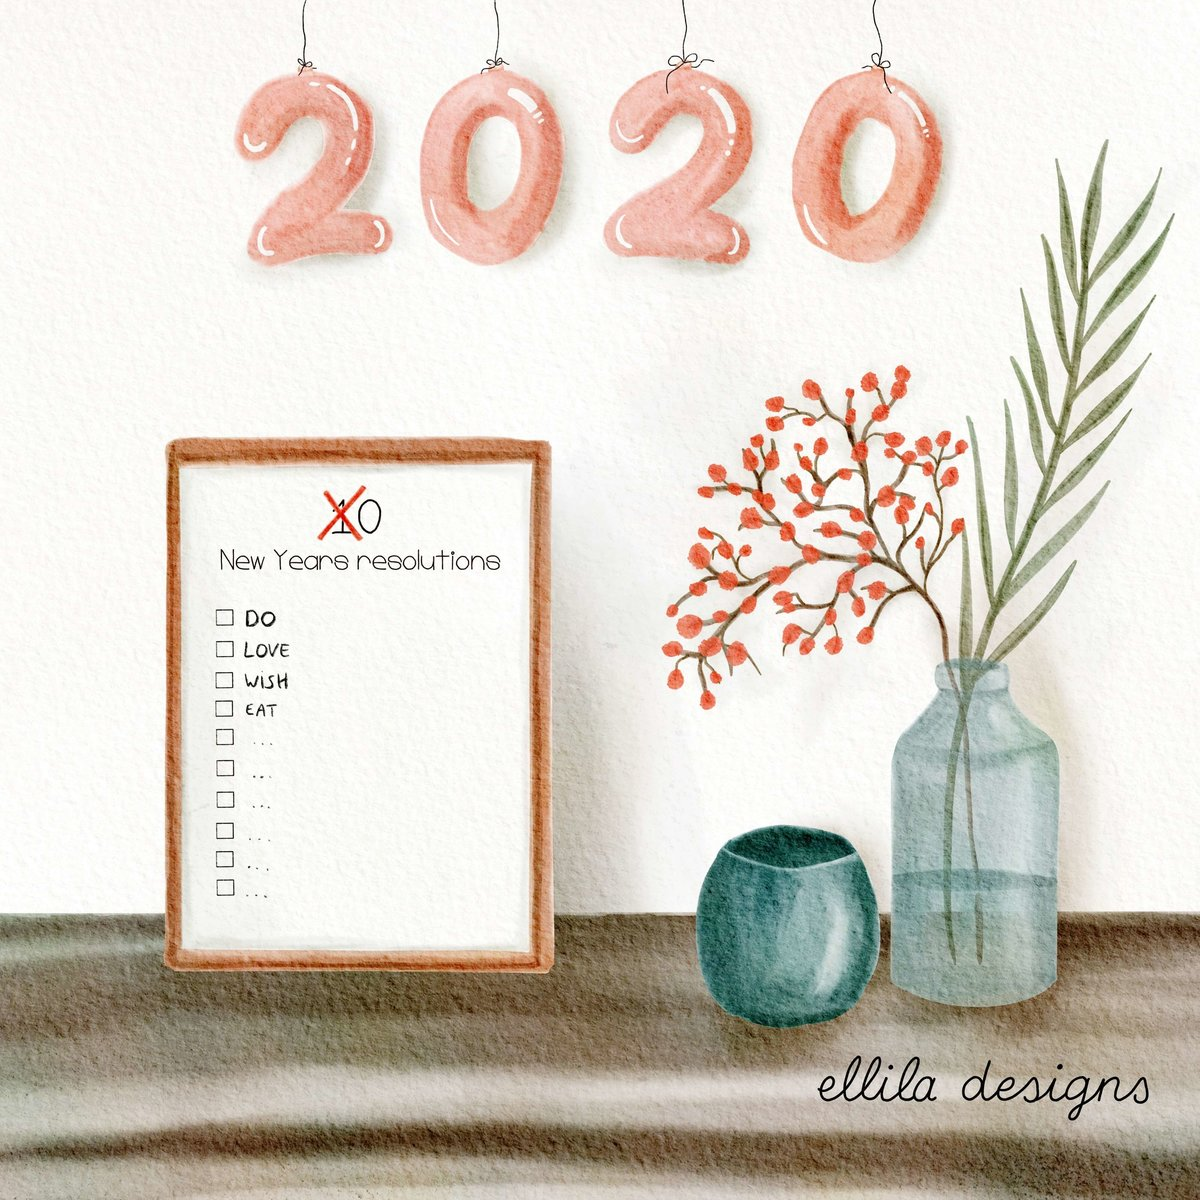 Decor 2020 illustration Ellila Designs